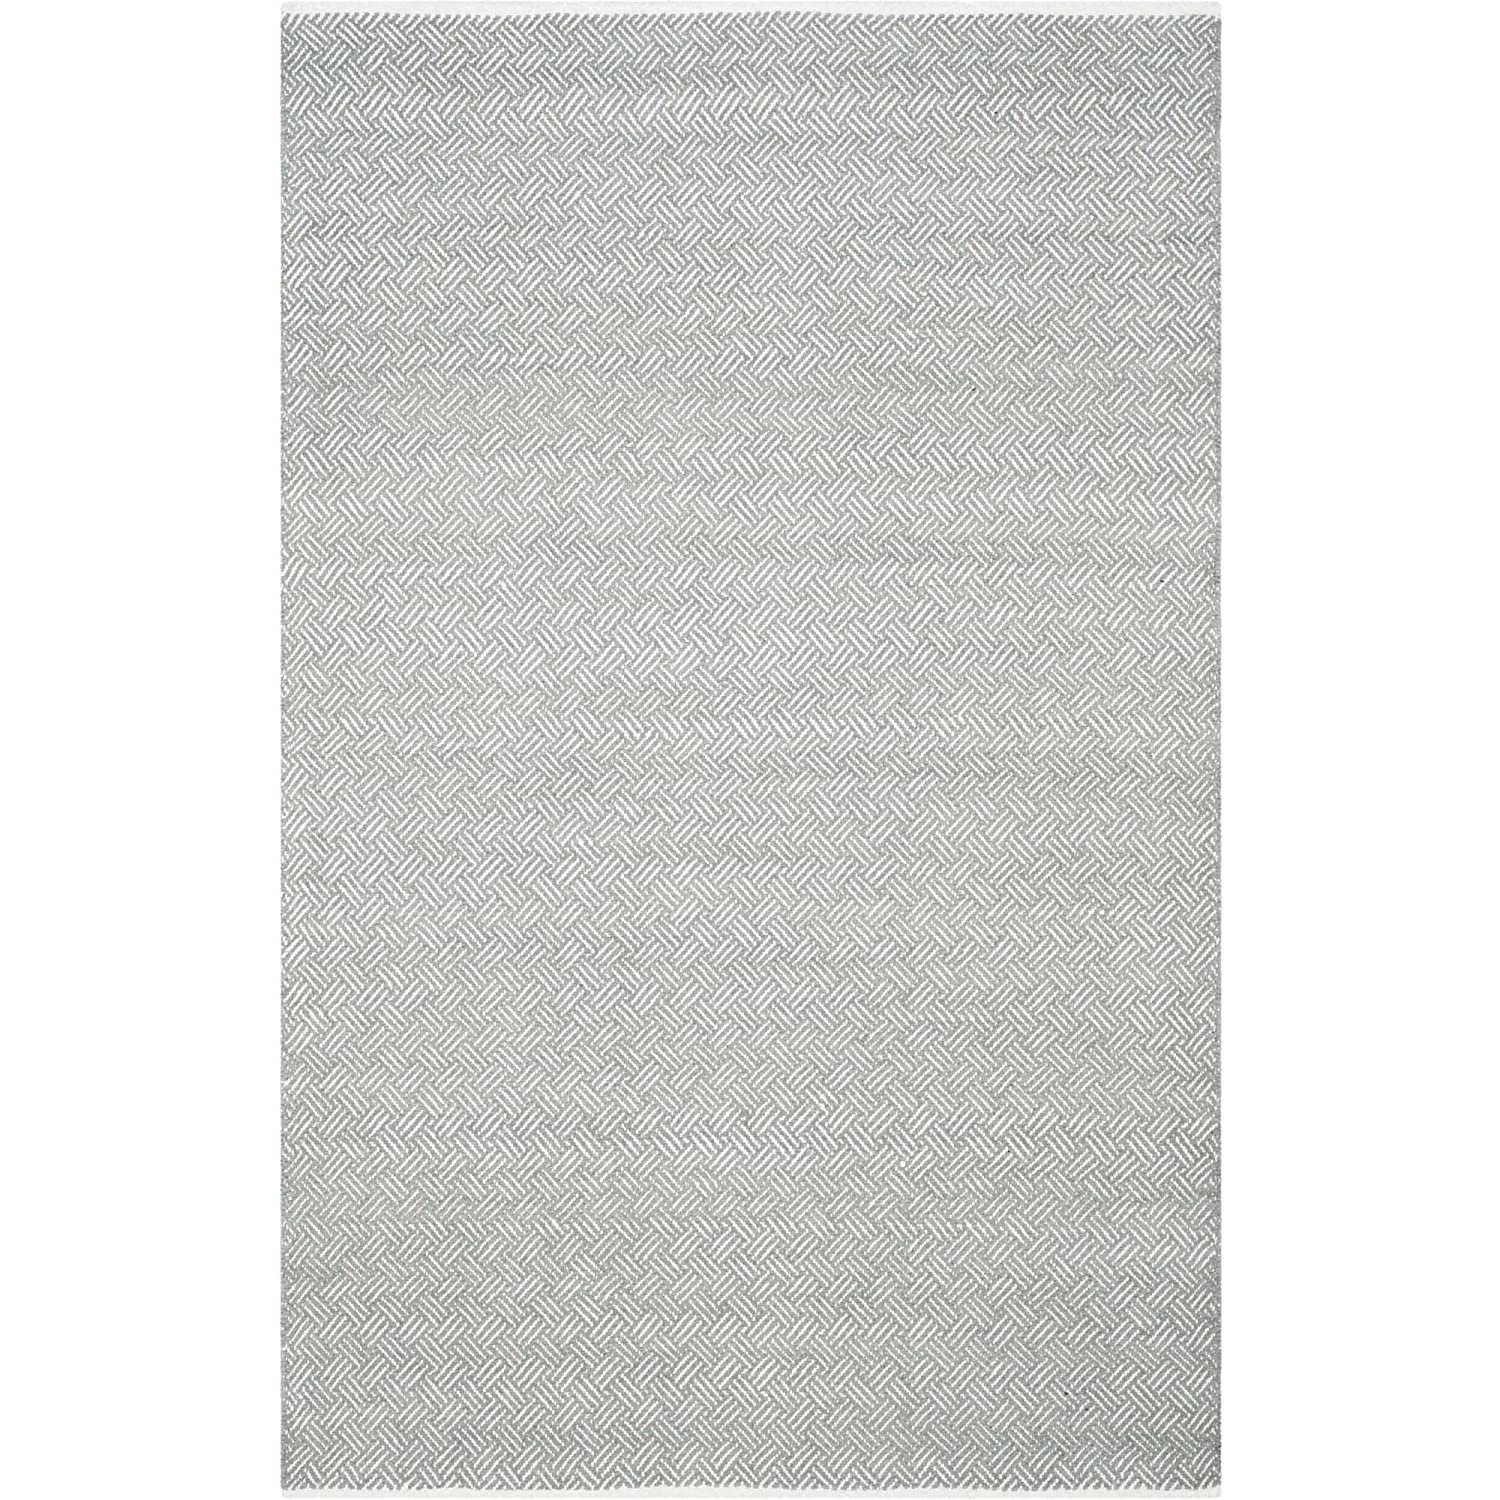 Amazon Com Boston Granville Tufted Cotton Area Rug Expert Guide